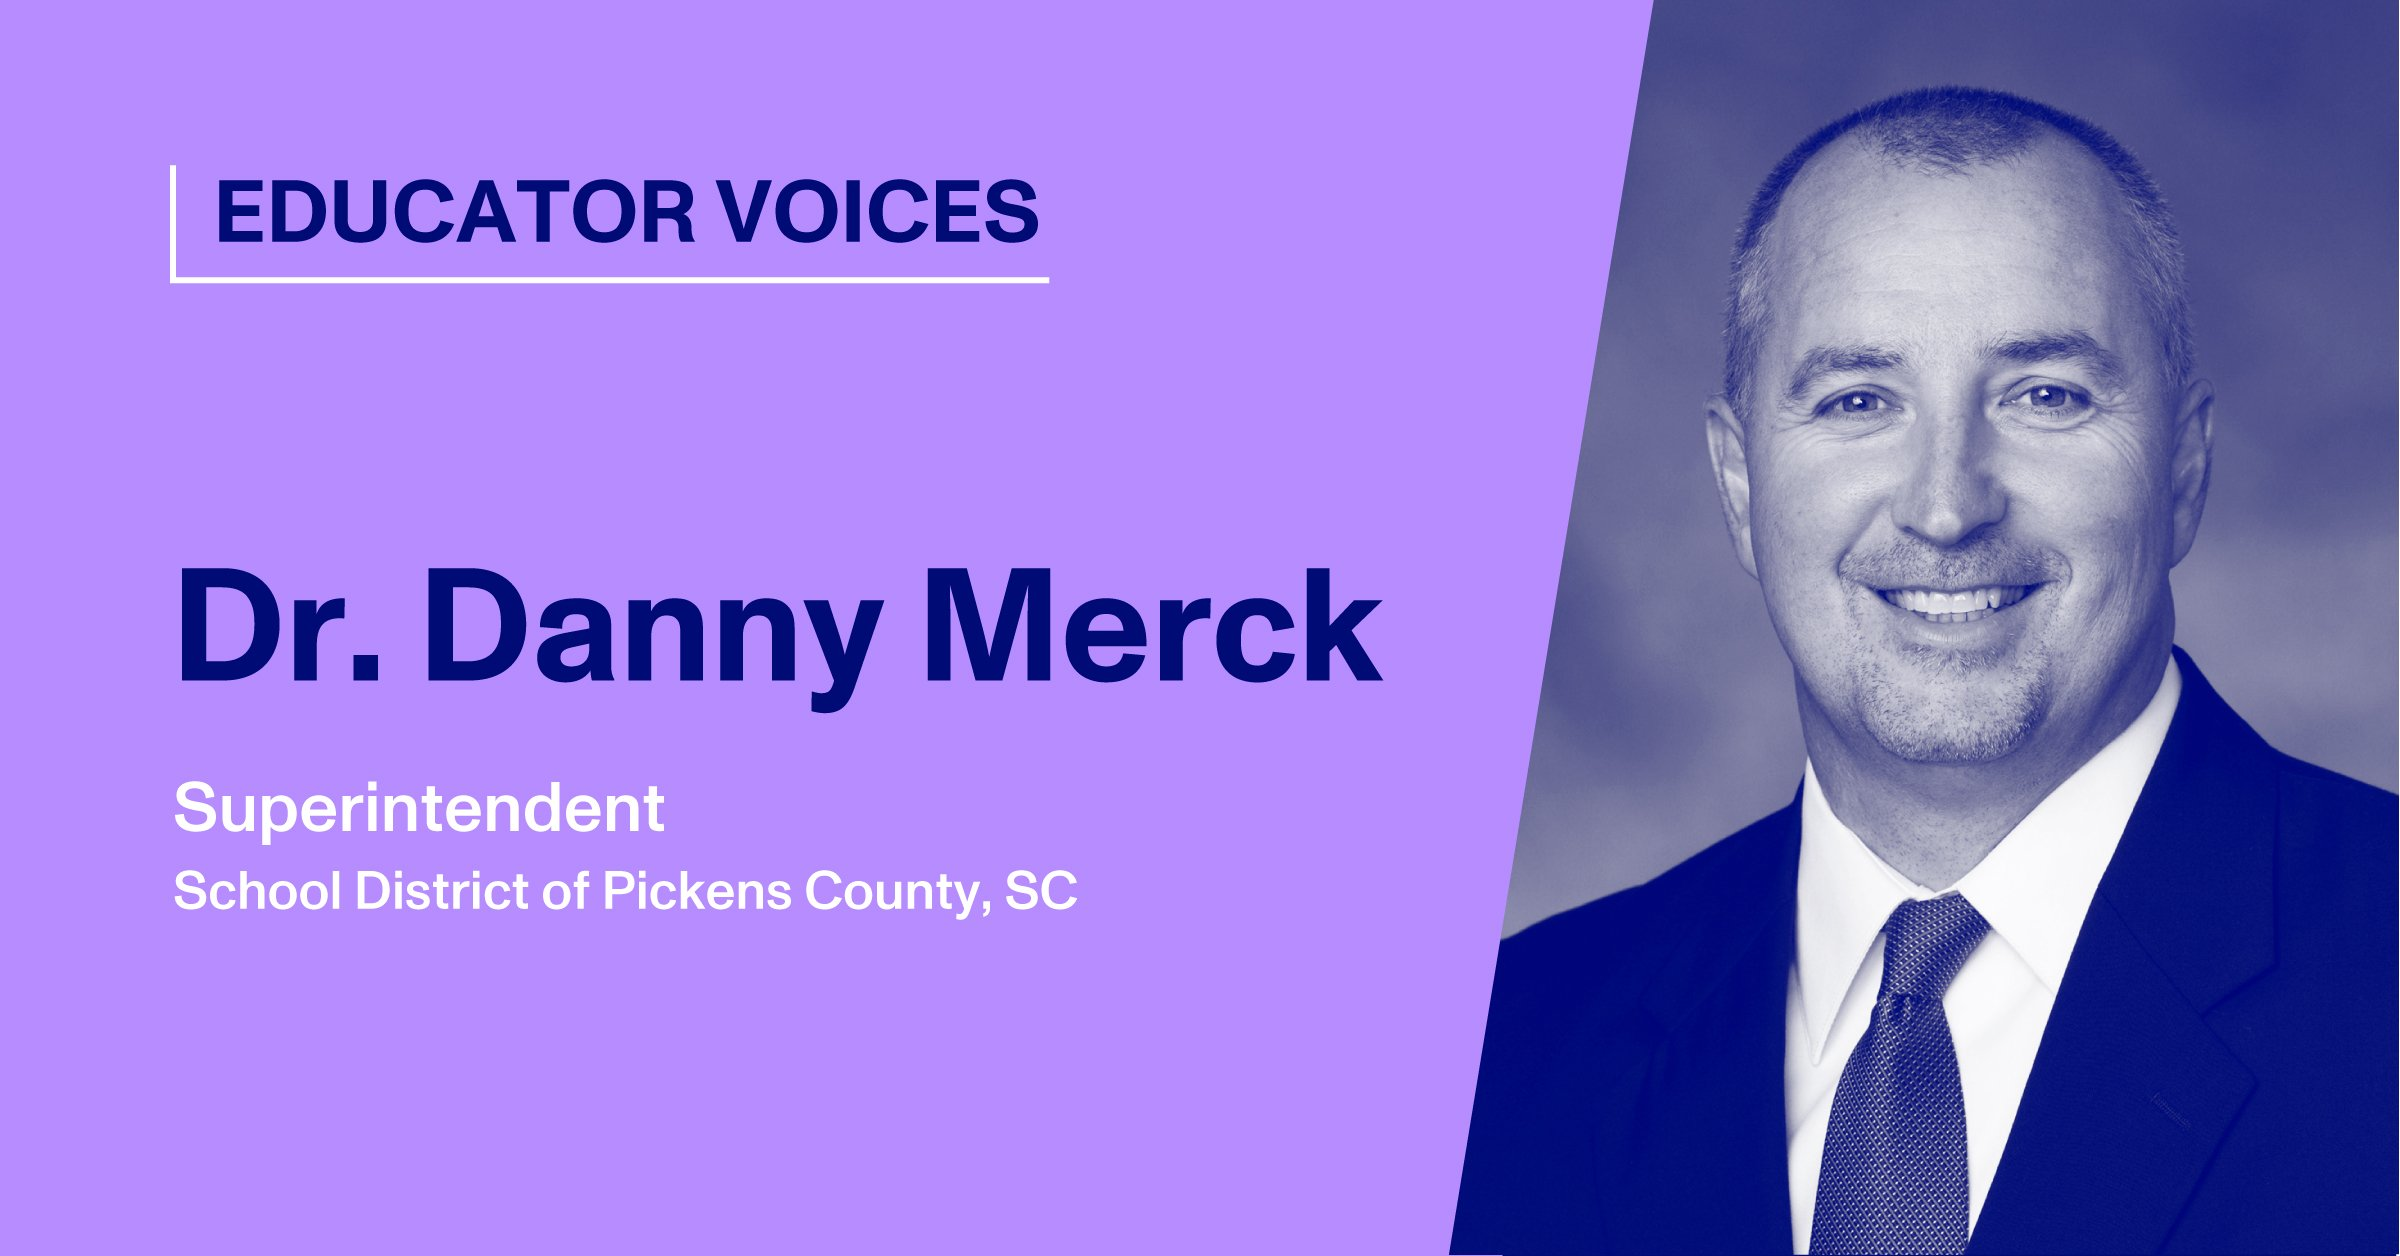 Blog Thumbnail with Headshot of Dr. Danny Merck